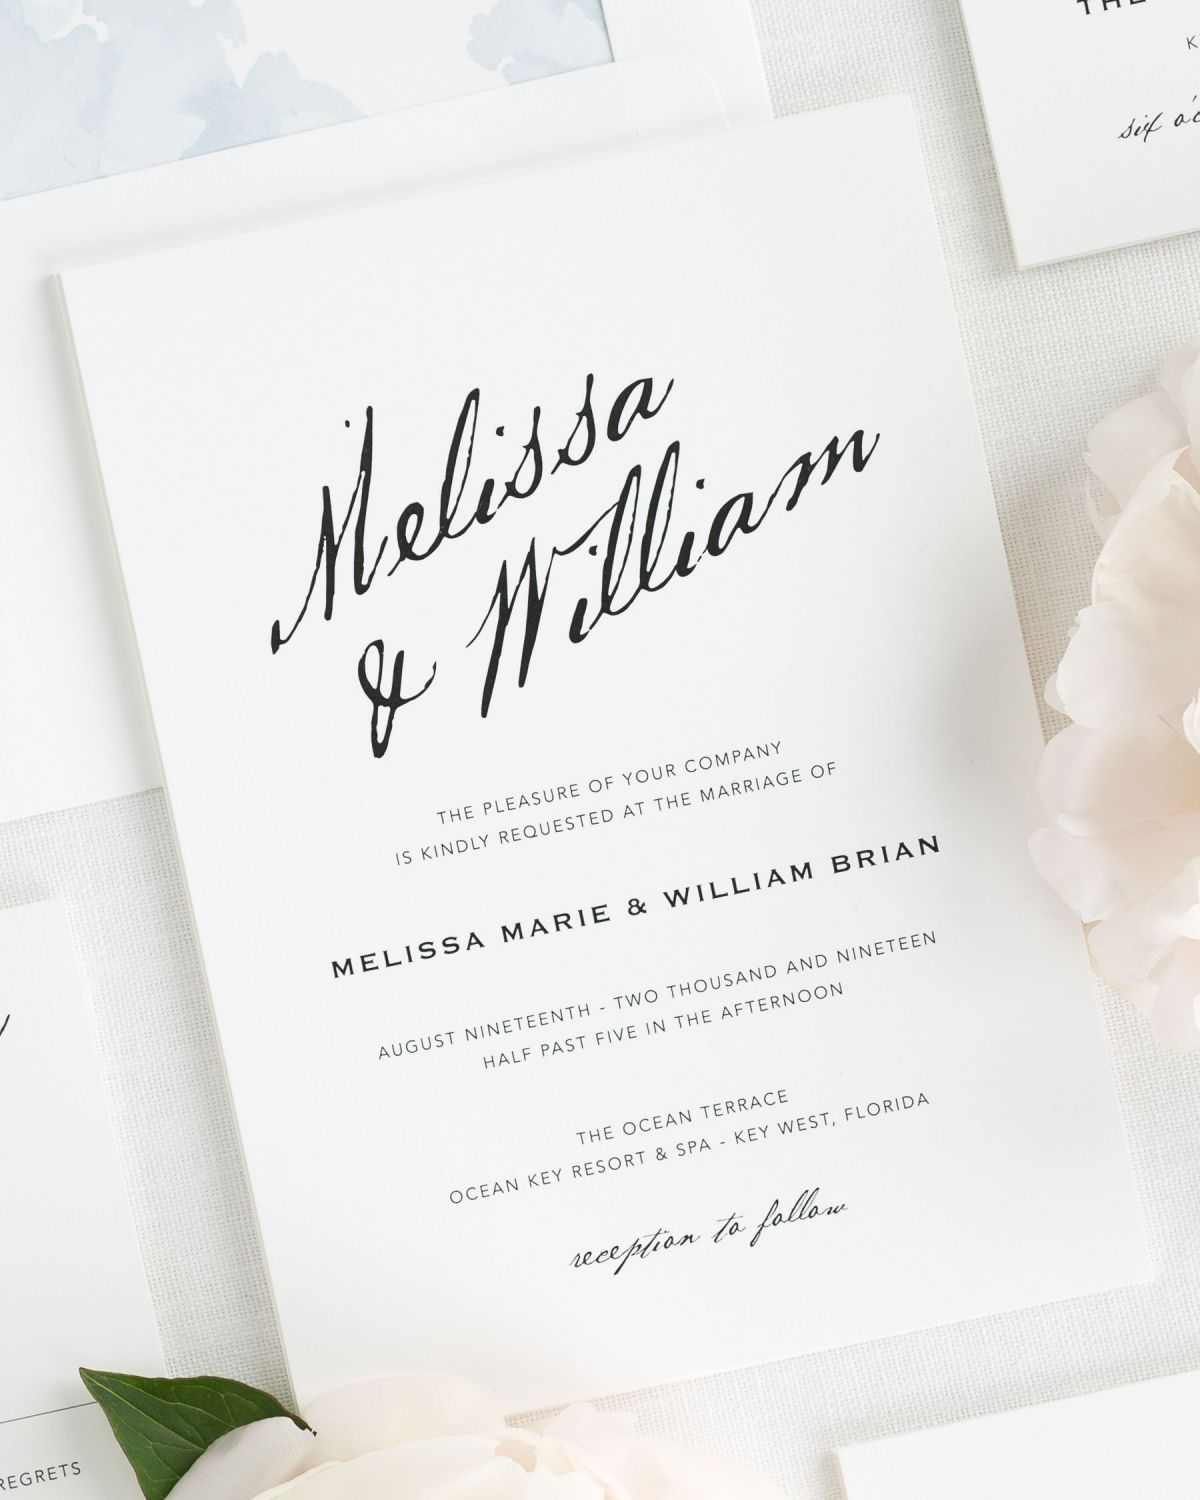 wedding invitation calligraphy cost gallery party invitations ideas calligraphy wedding invitations cost wedding invitations modern calligraphy - Wedding Invitations Cost